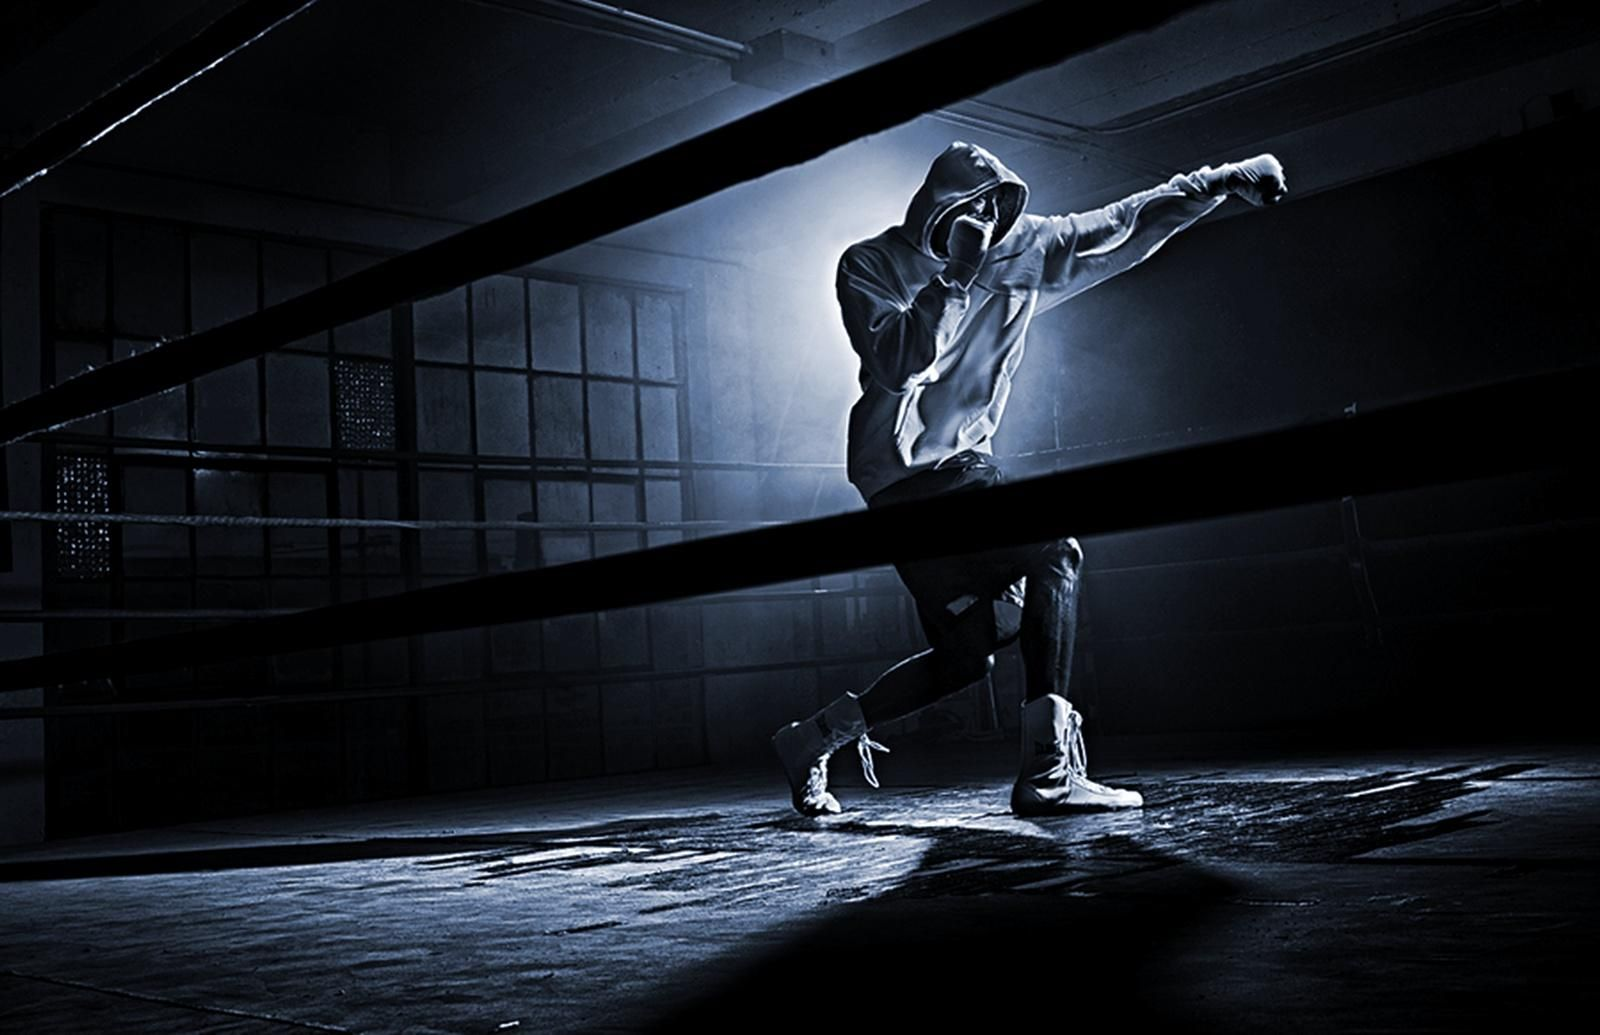 1600x1035 - Boxing Wallpapers 2